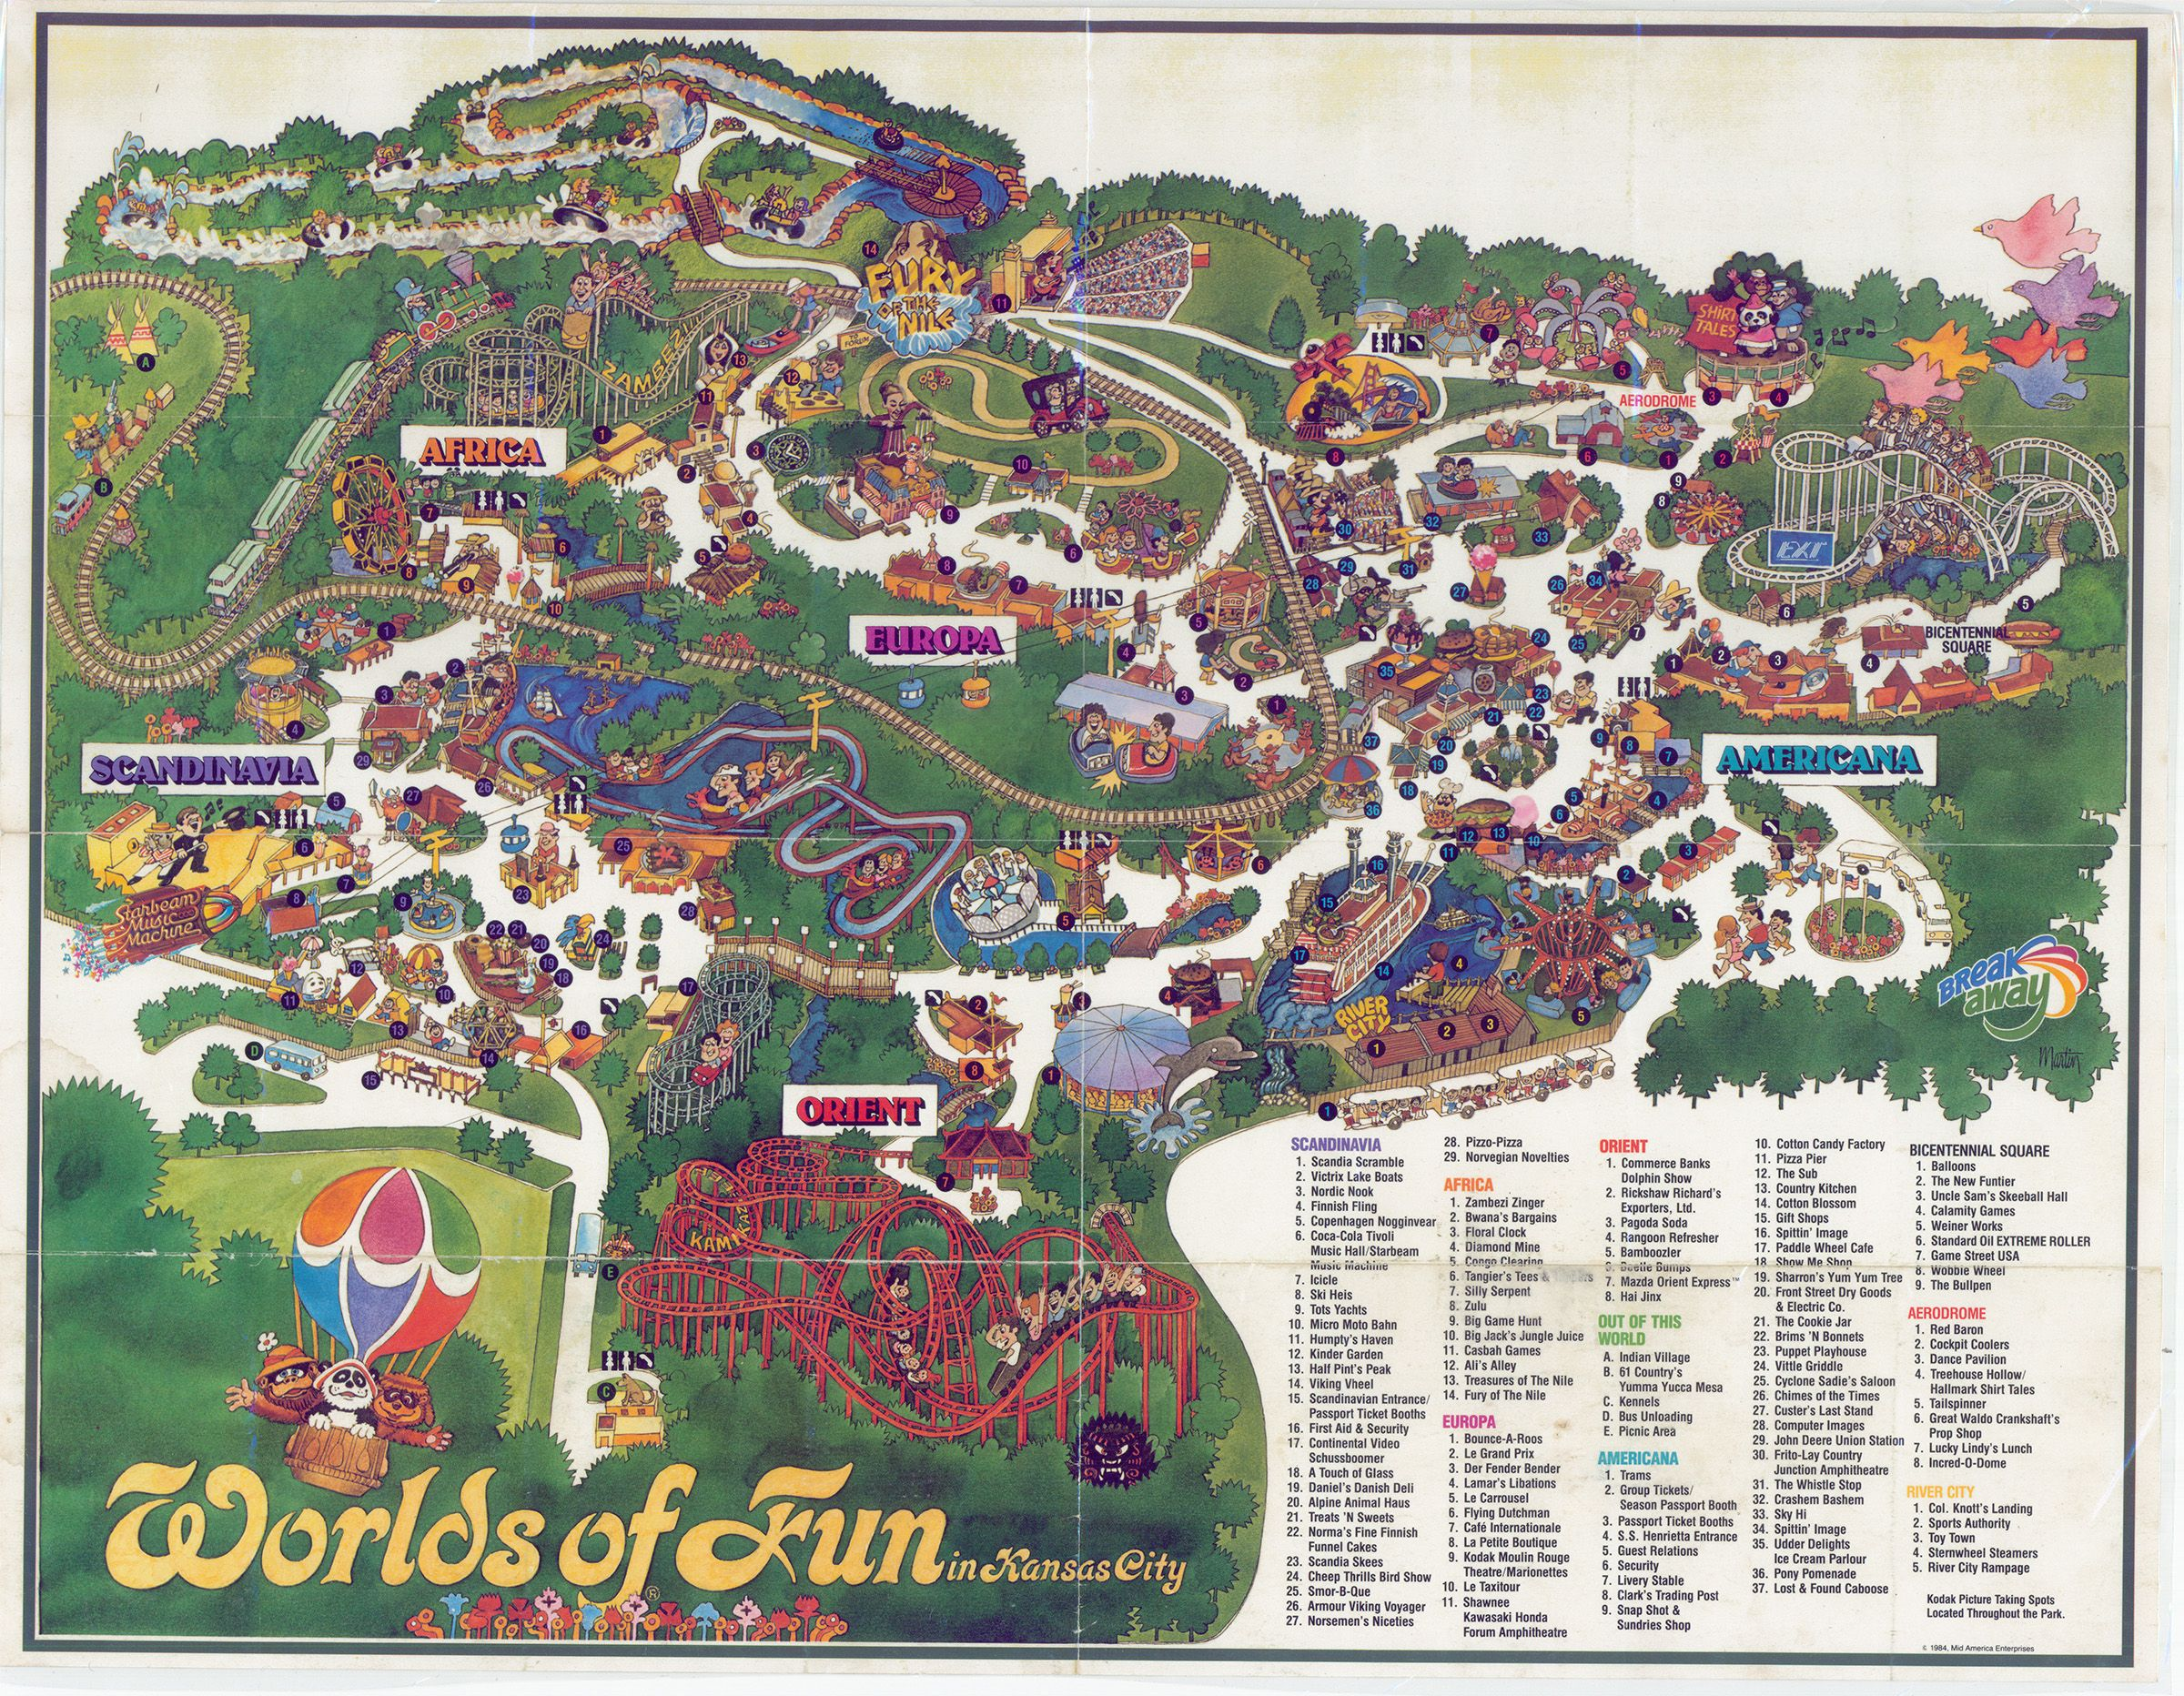 Pin By E Cade On My Kansas City Worlds Of Fun Wall Collage City Photo